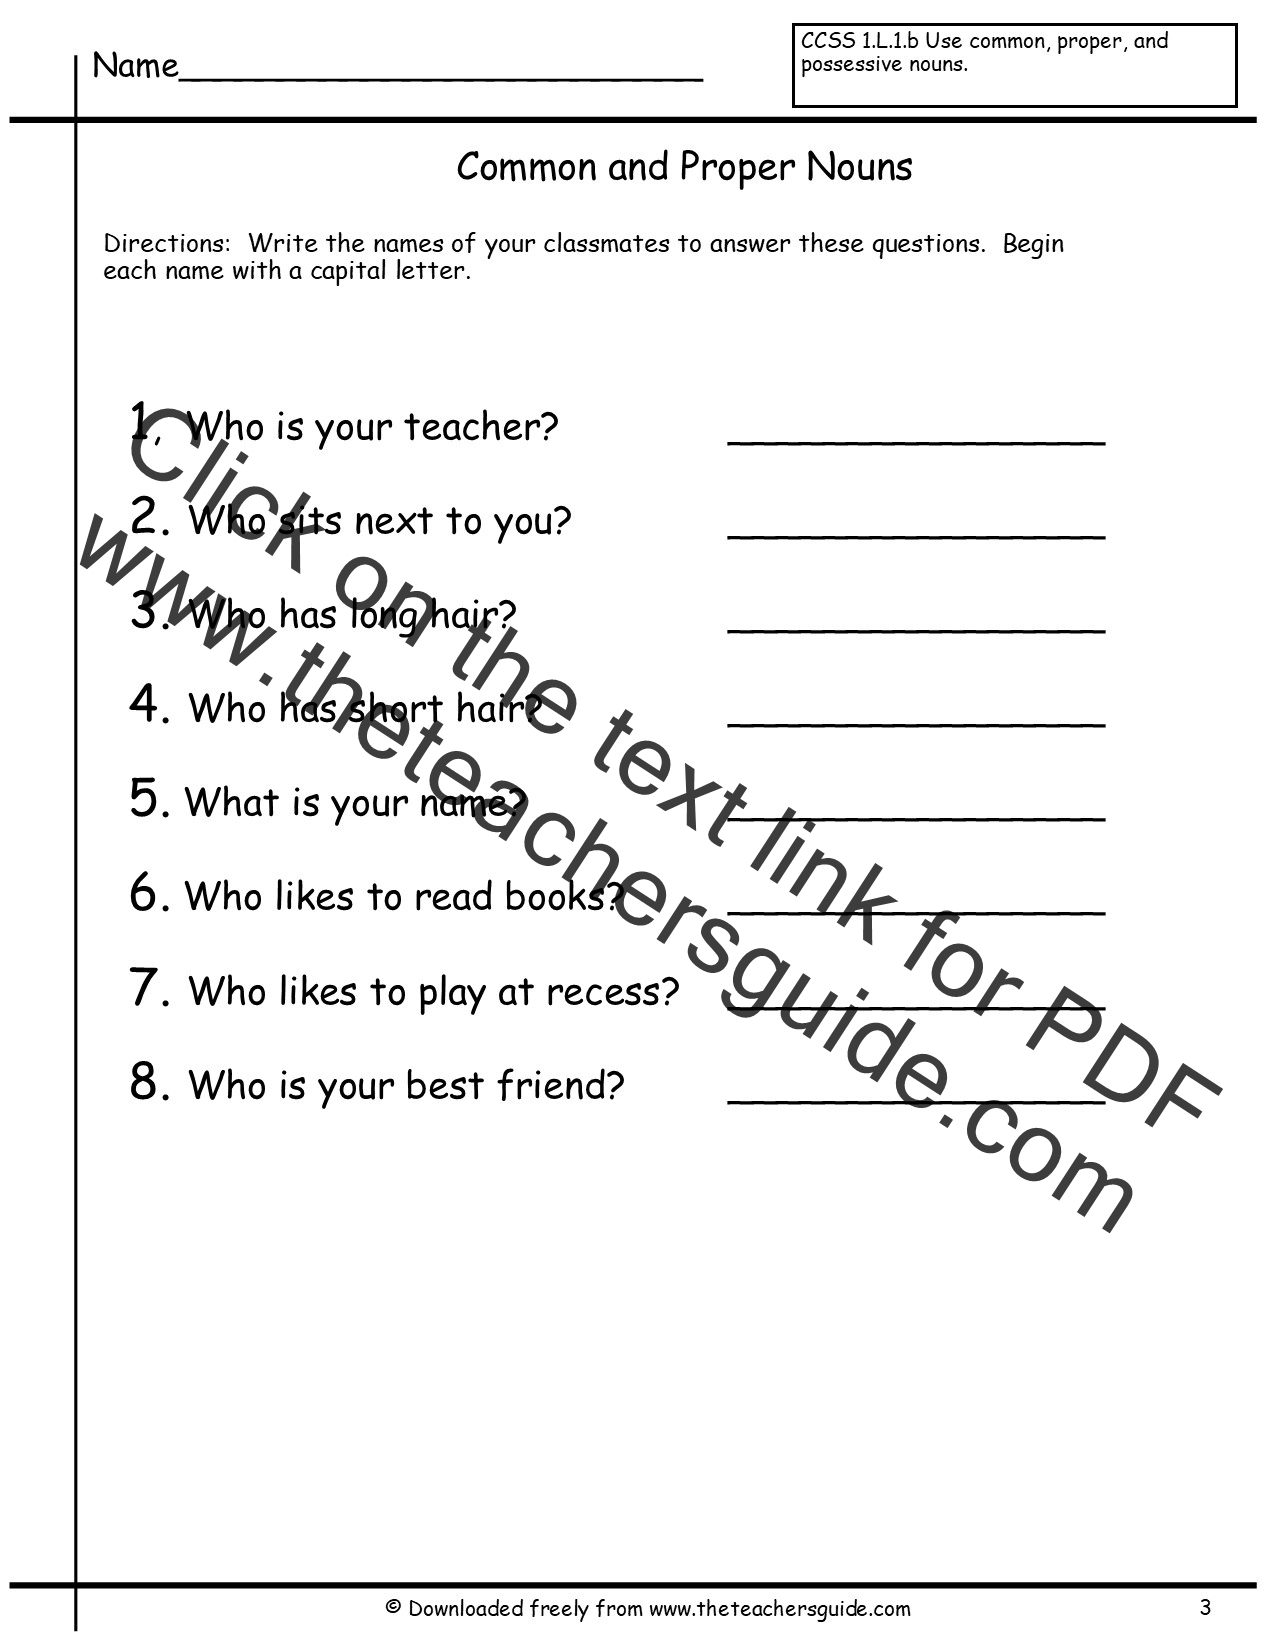 Printables Noun Worksheets 2nd Grade common and proper nouns worksheets from the teachers guide worksheet